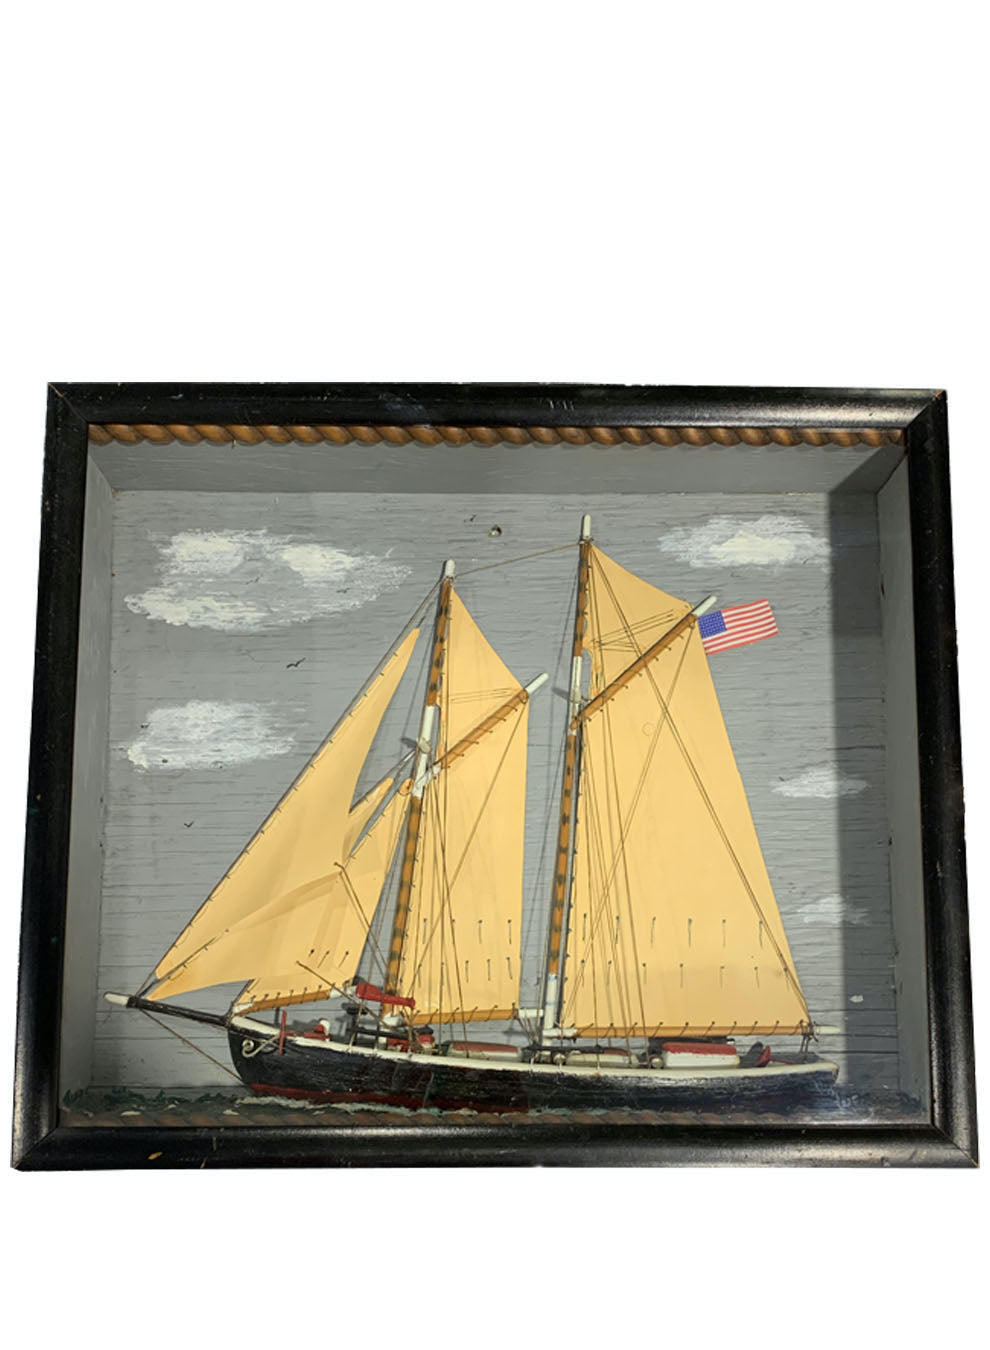 MID TO LATE 19TH CENTURY AMERICAN SHIP DIORAMA - Accessories - Libertine